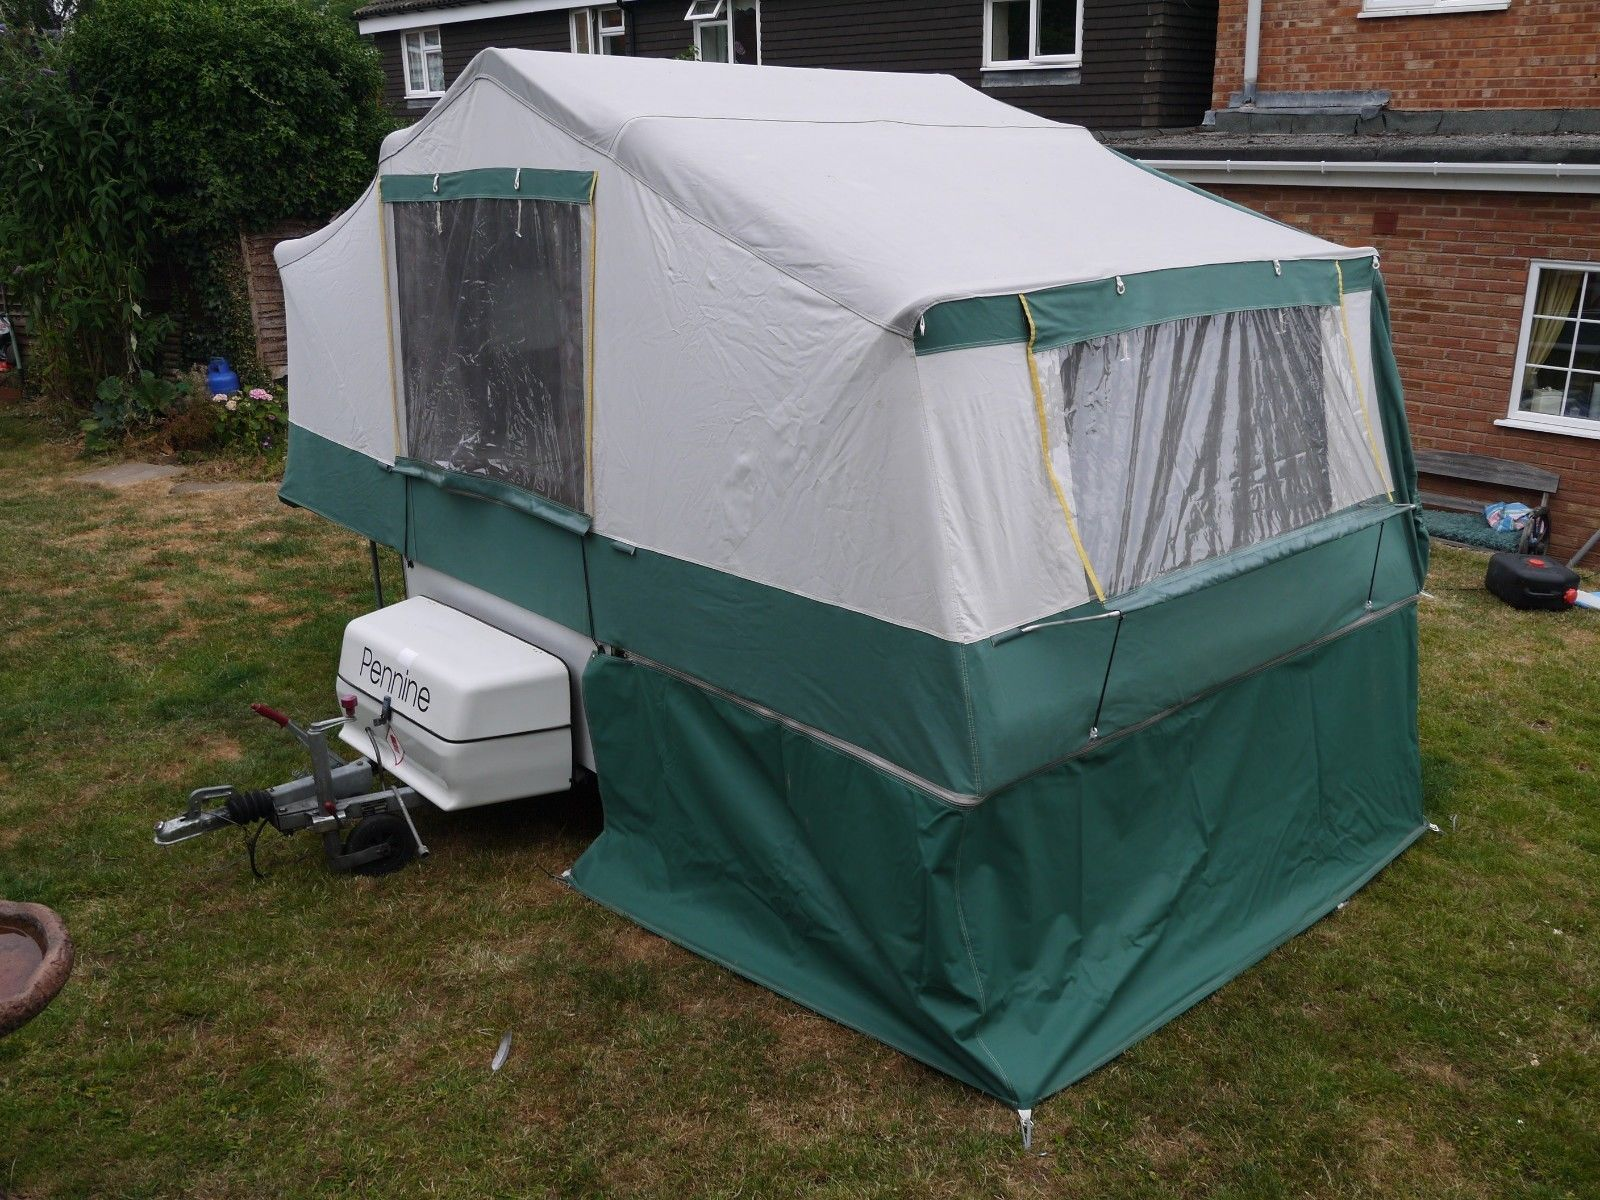 PENNINE AZTEC, SMALL COMPACT IDEAL FIRST FOLDING CAMPER 4 ...